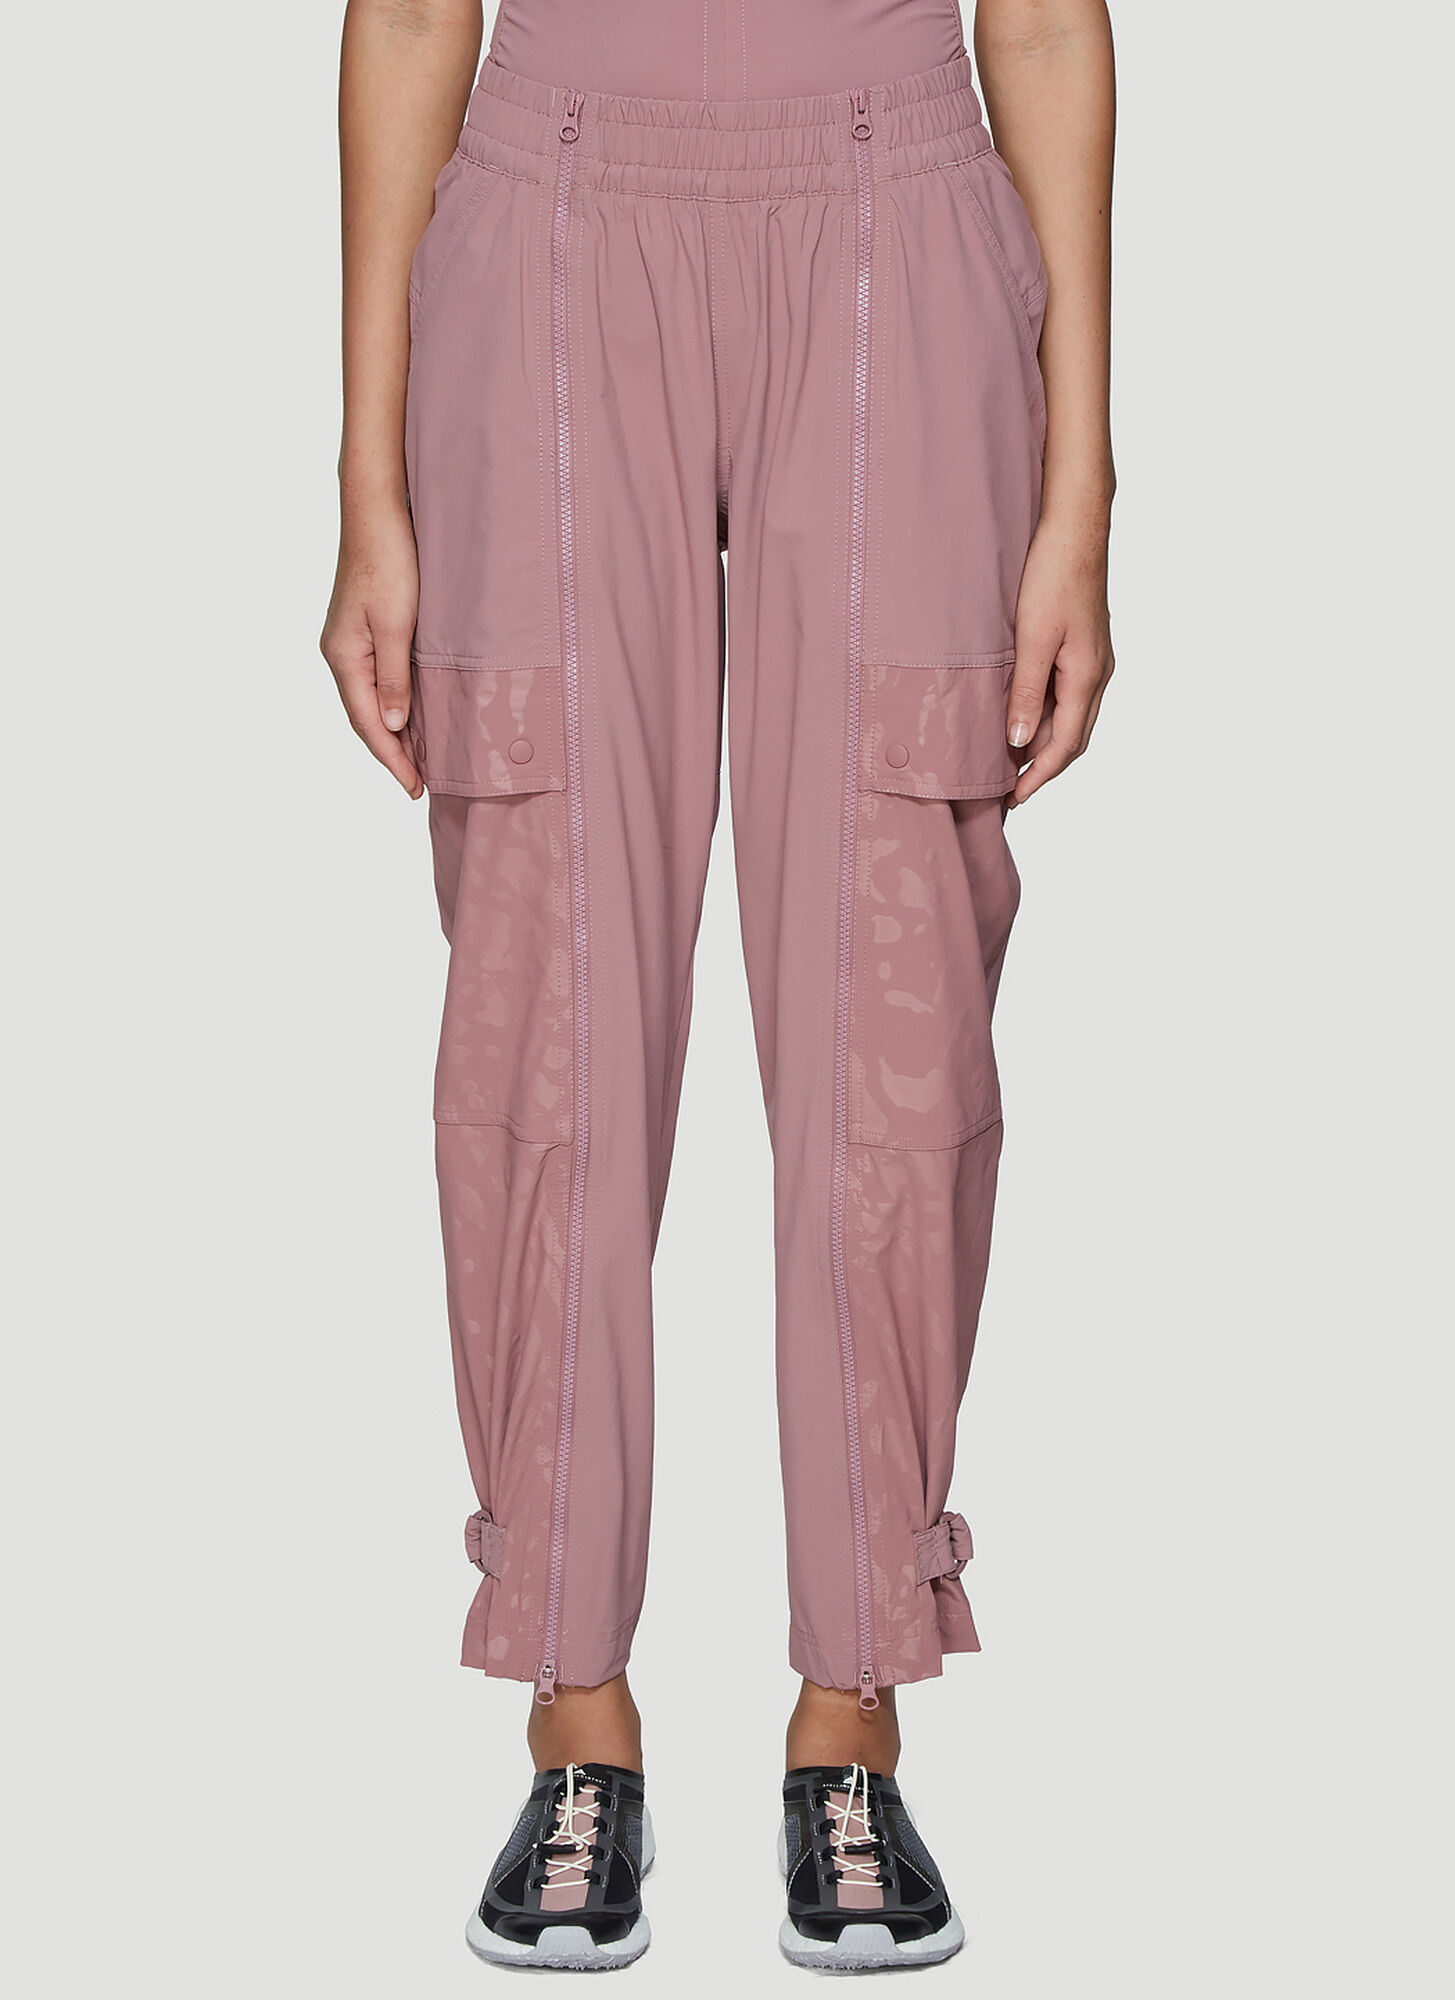 adidas by Stella McCartney Zip-Through Performance Track Pants in Pink